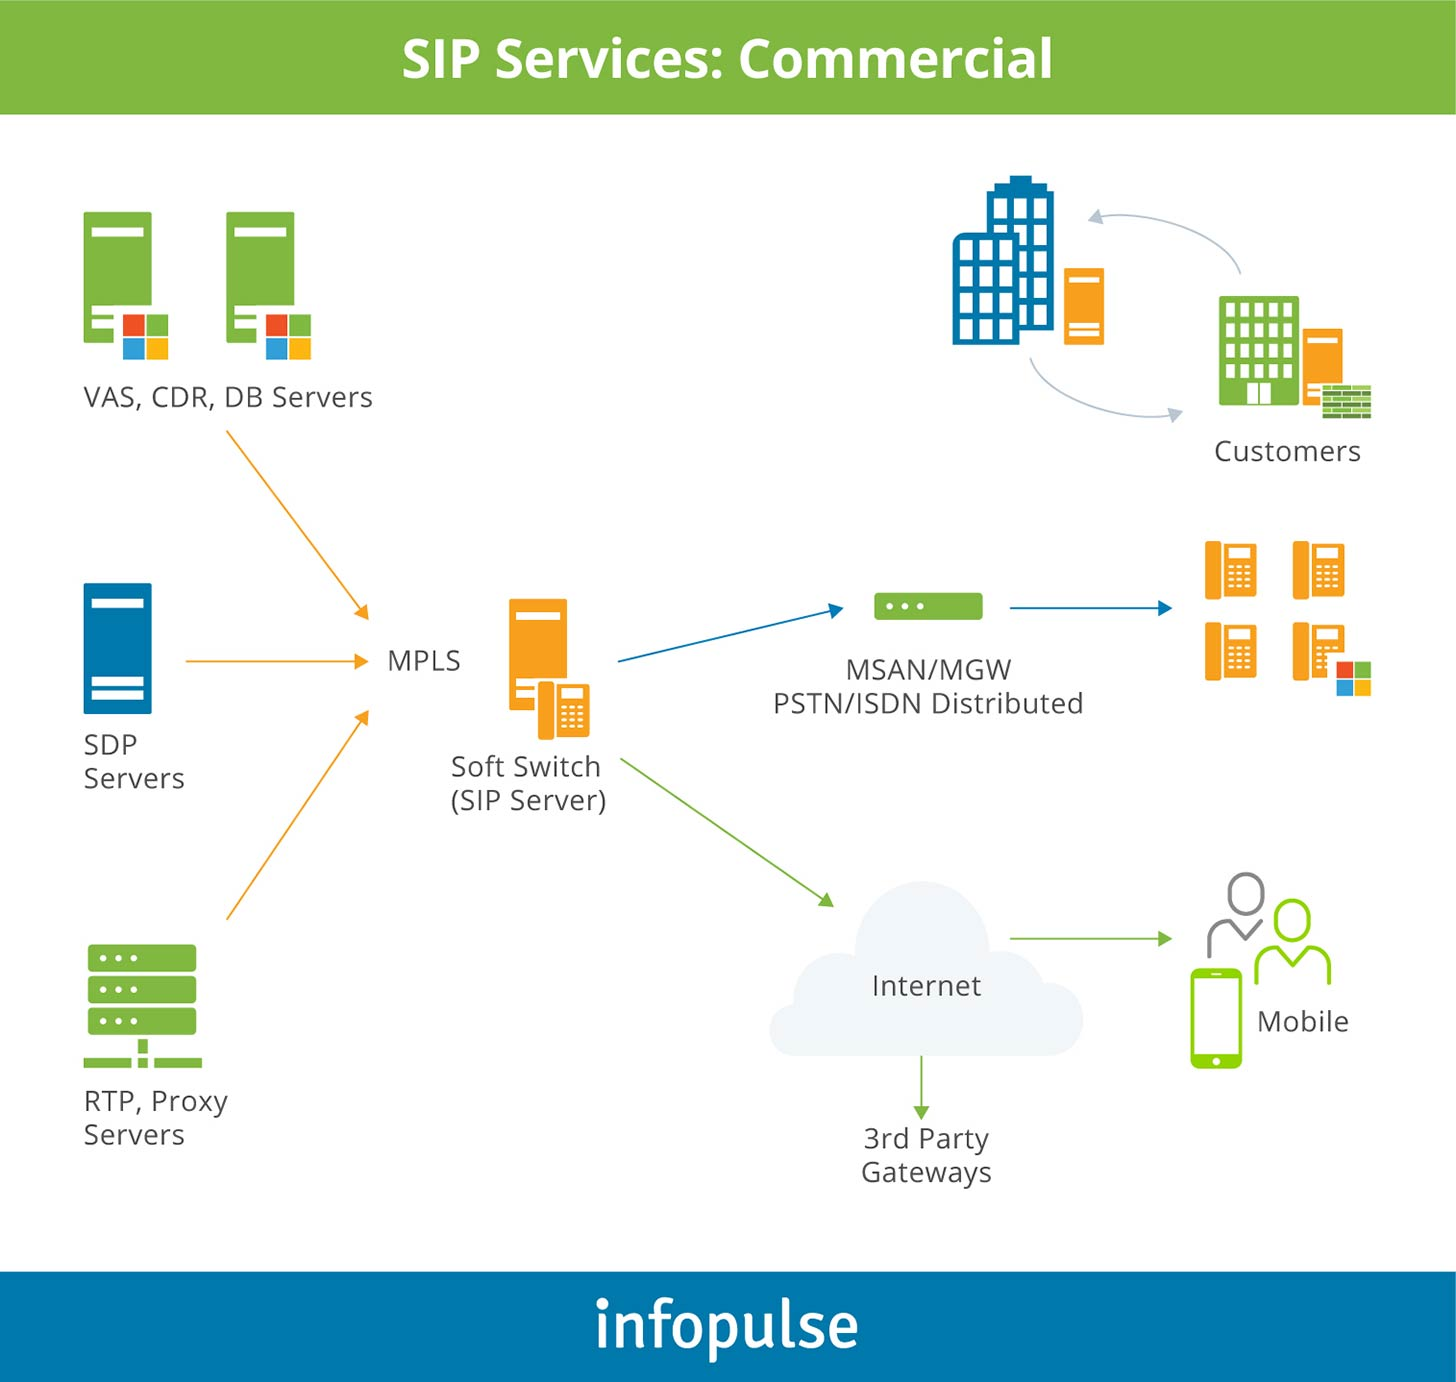 SIP Services: Commercial - 2